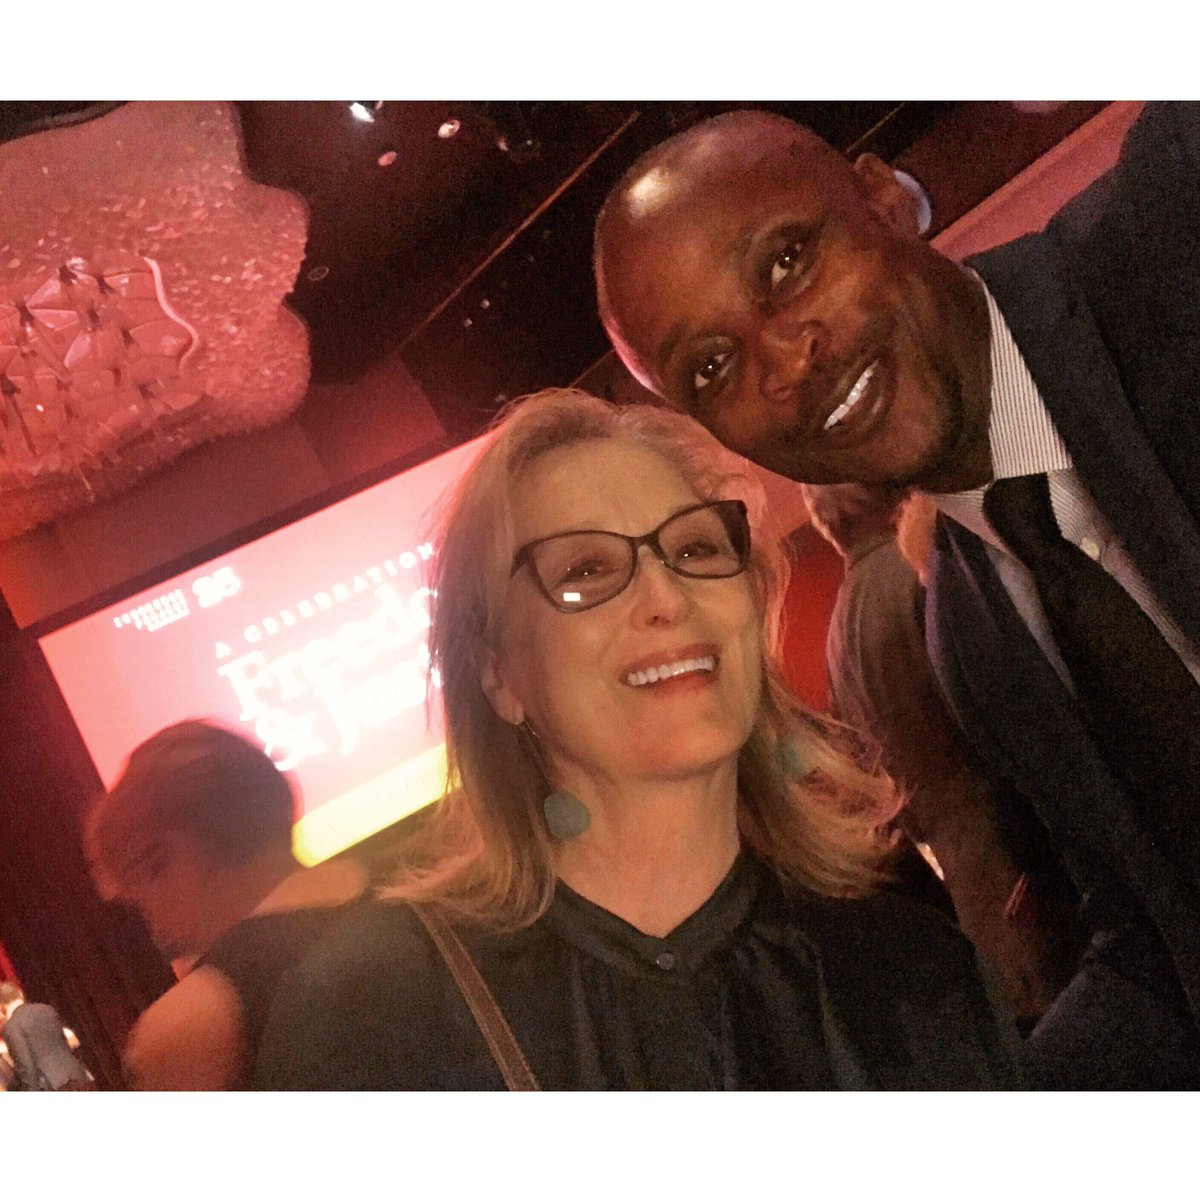 It's official...We are an item! #MerylStreep and I at the @innocence gala. #IPGALA2017 #FreedomAndJustice #25Anniversarypic.twitter.com/WGutdQyxoX